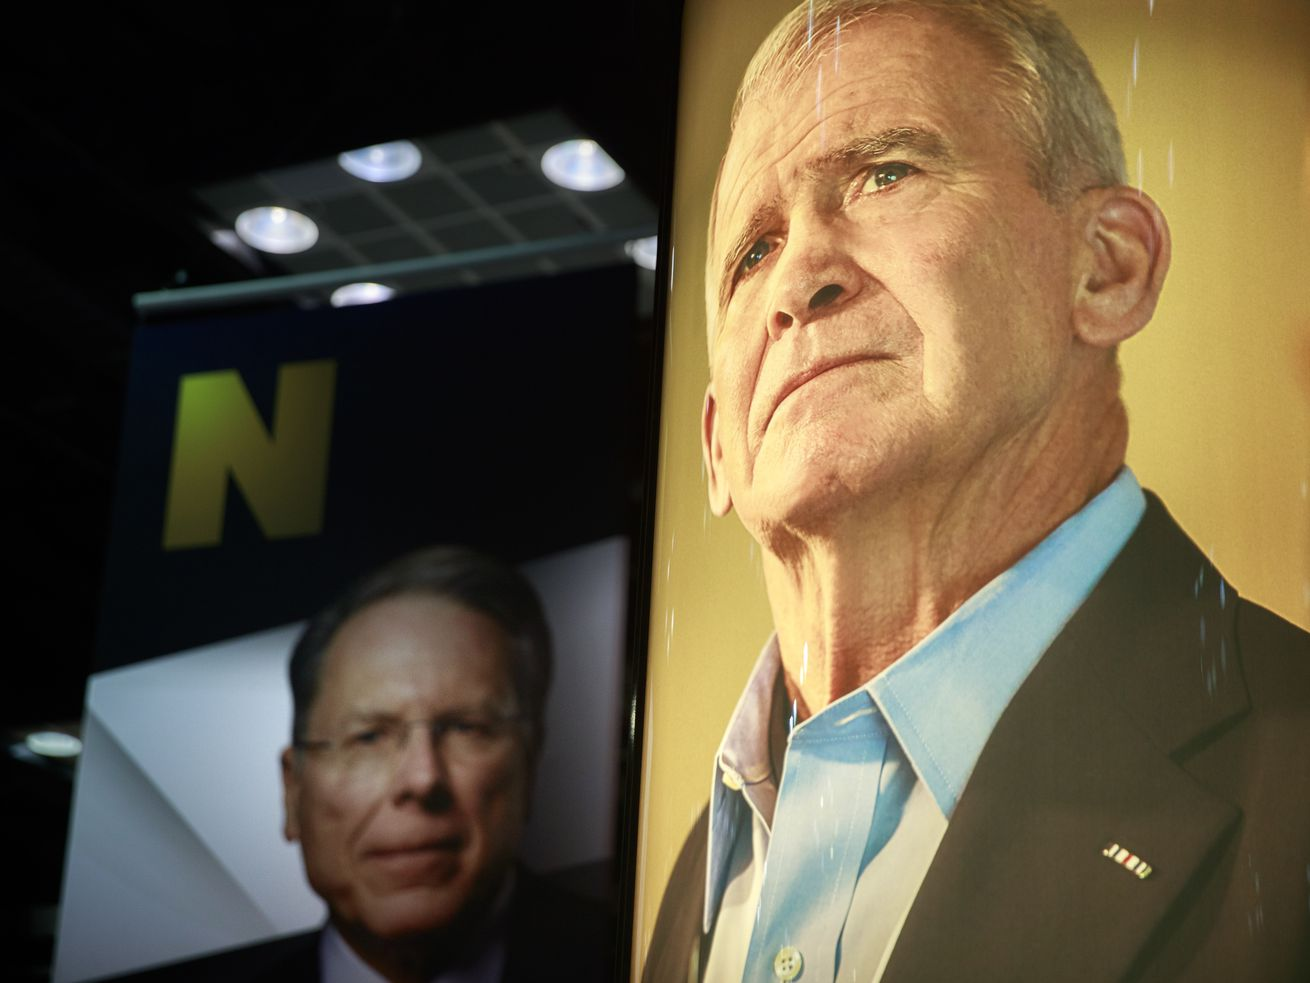 Photos of NRA Chief Executive and Executive Vice President Wayne LaPierre (L) and former president of the NRA Oliver North (R) are on display during the third day of the National Rifle Association convention being held nearby.